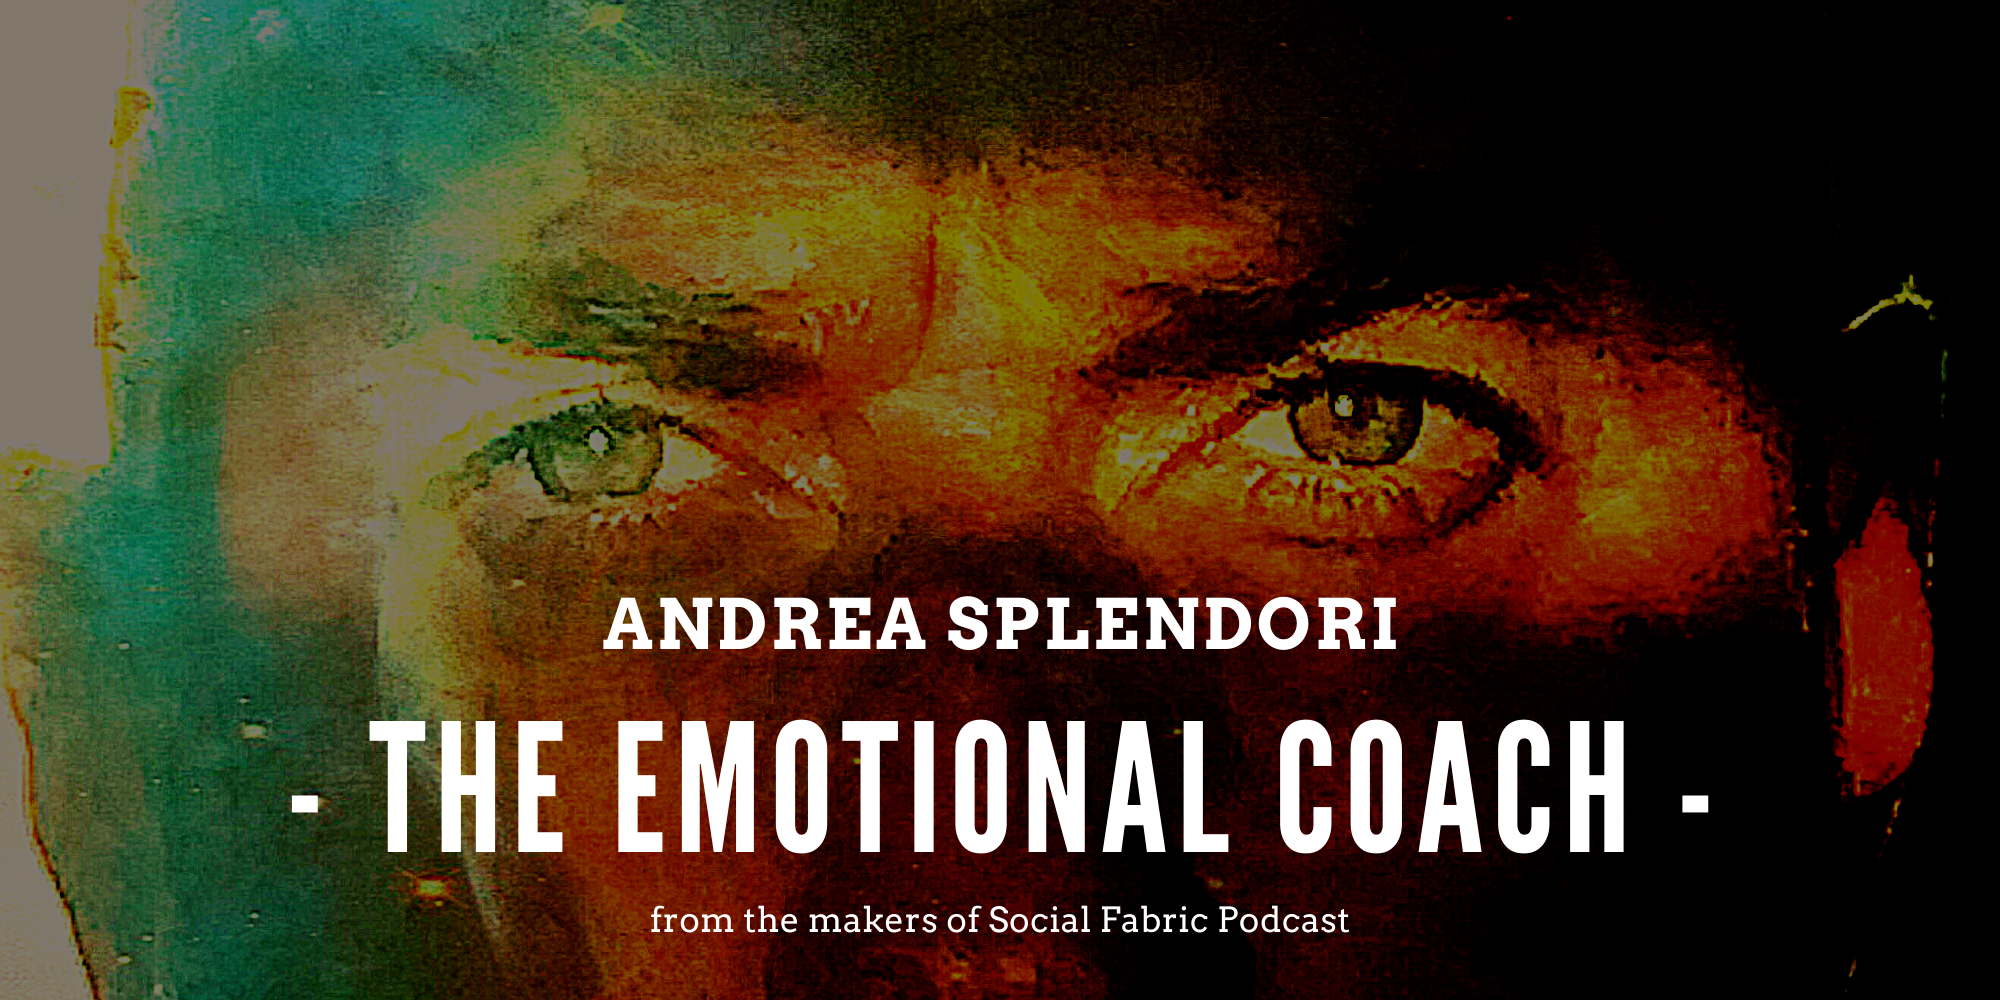 The Emotional Coach